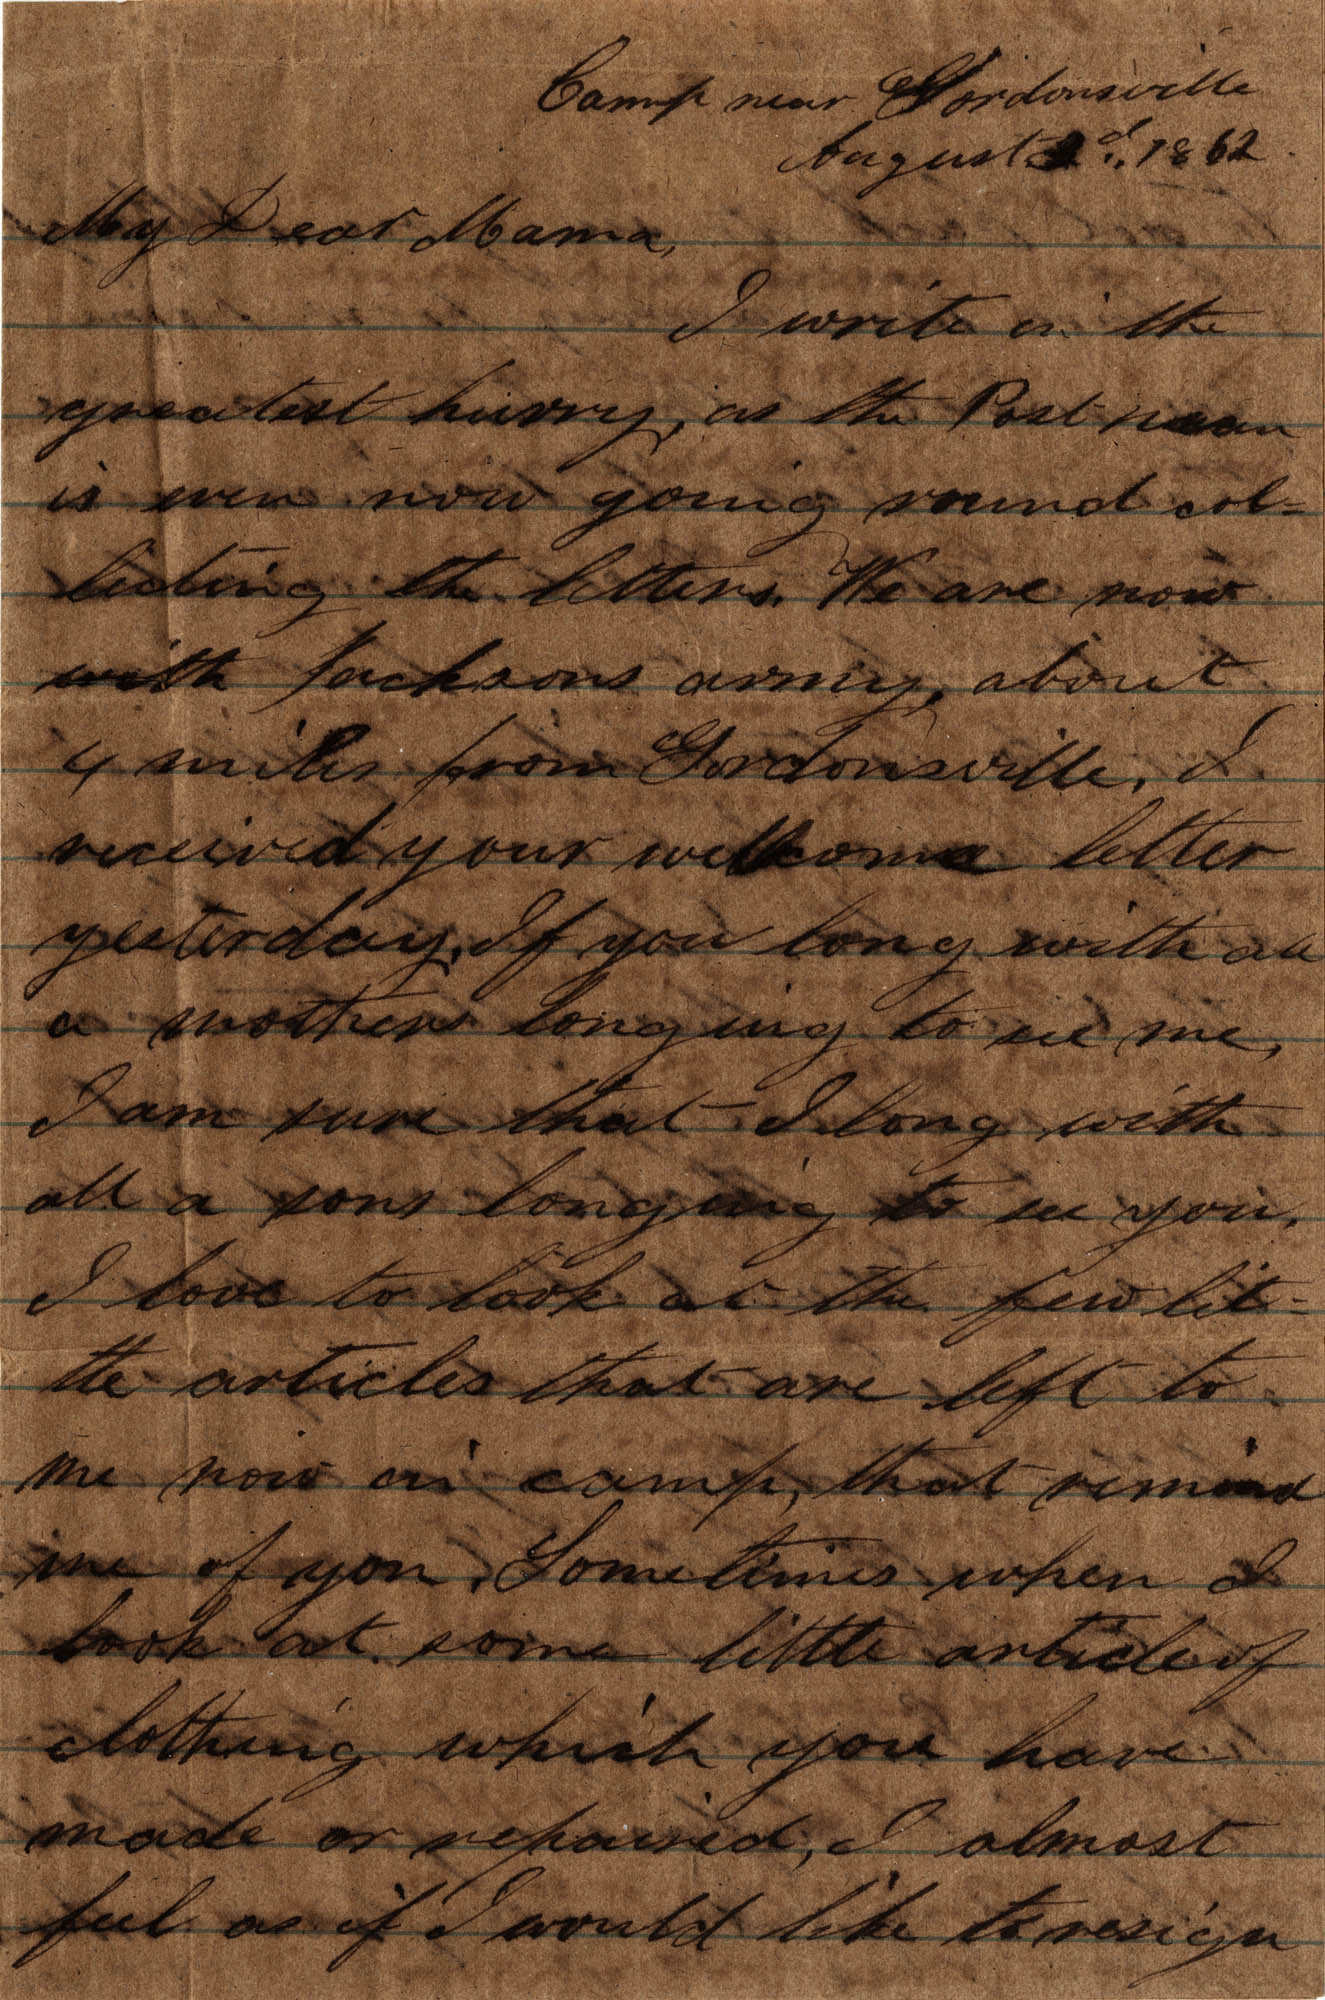 064. Willis Keith to Anna Bell Keith -- August 3, 1862